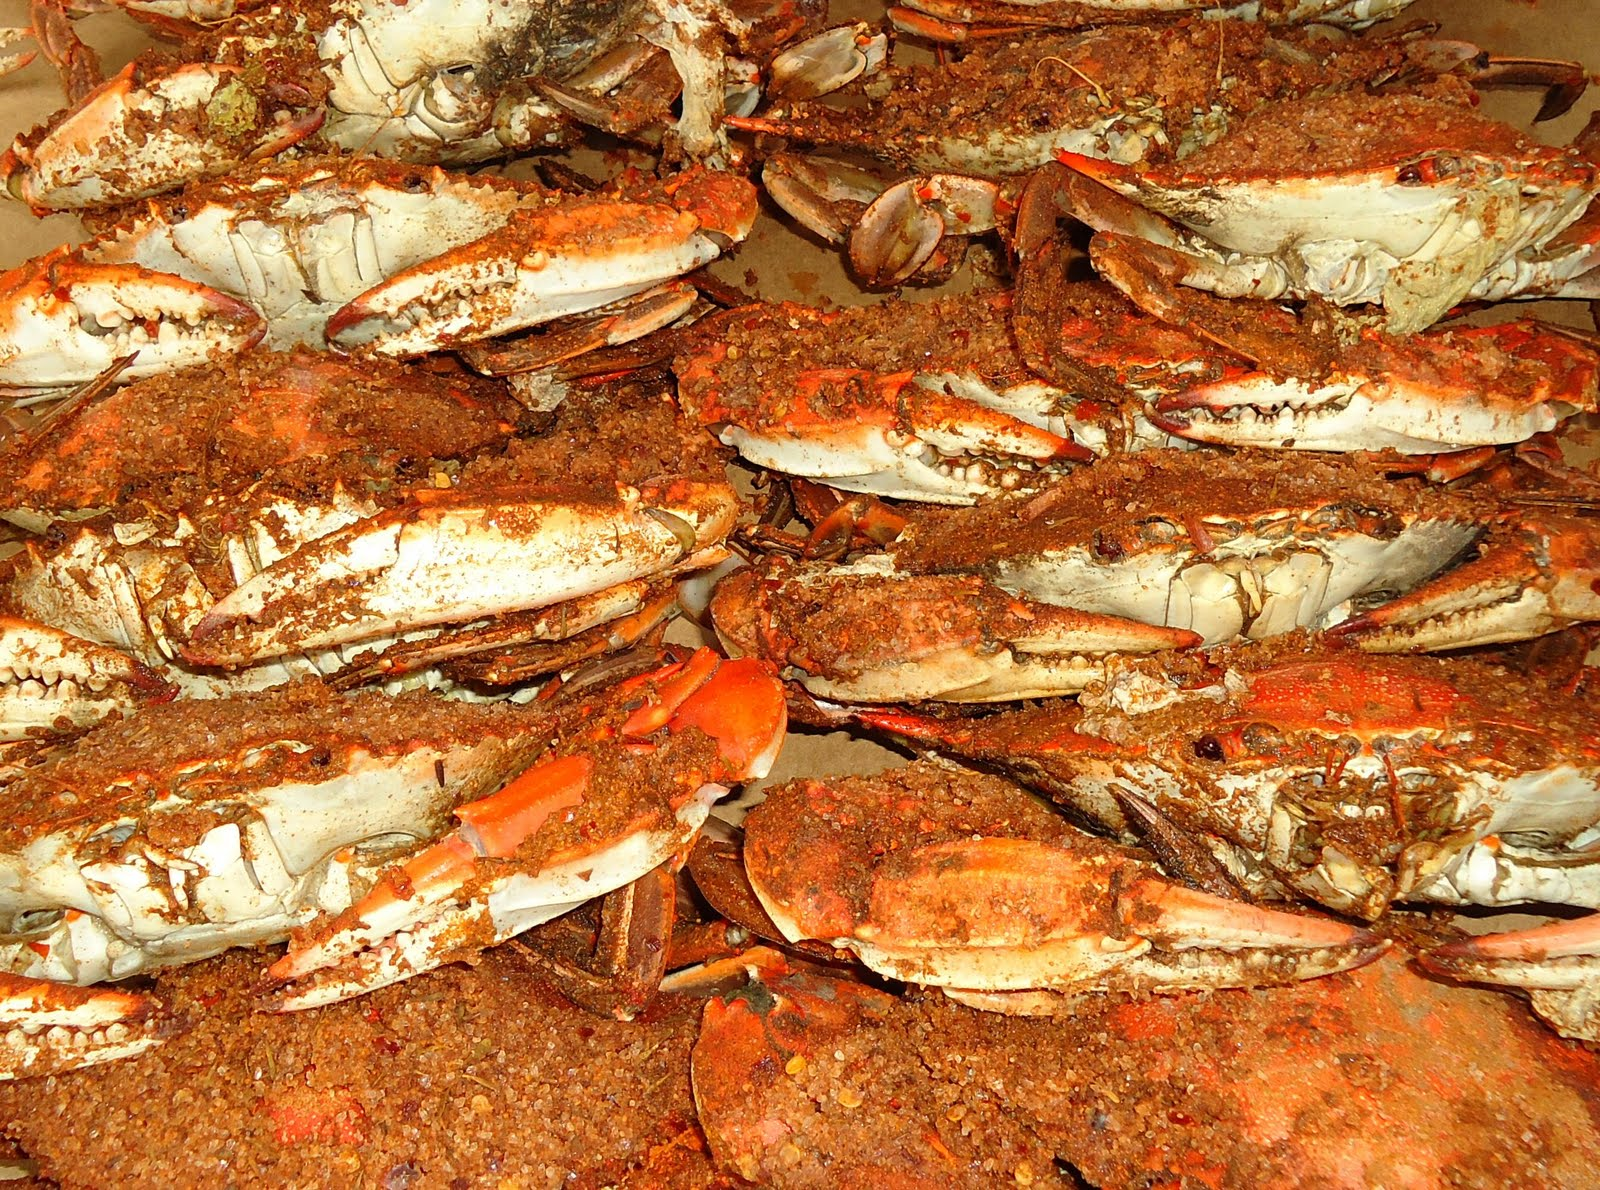 Maryland crabs are covered in Old Bay seasoning. Old Bay has been ...